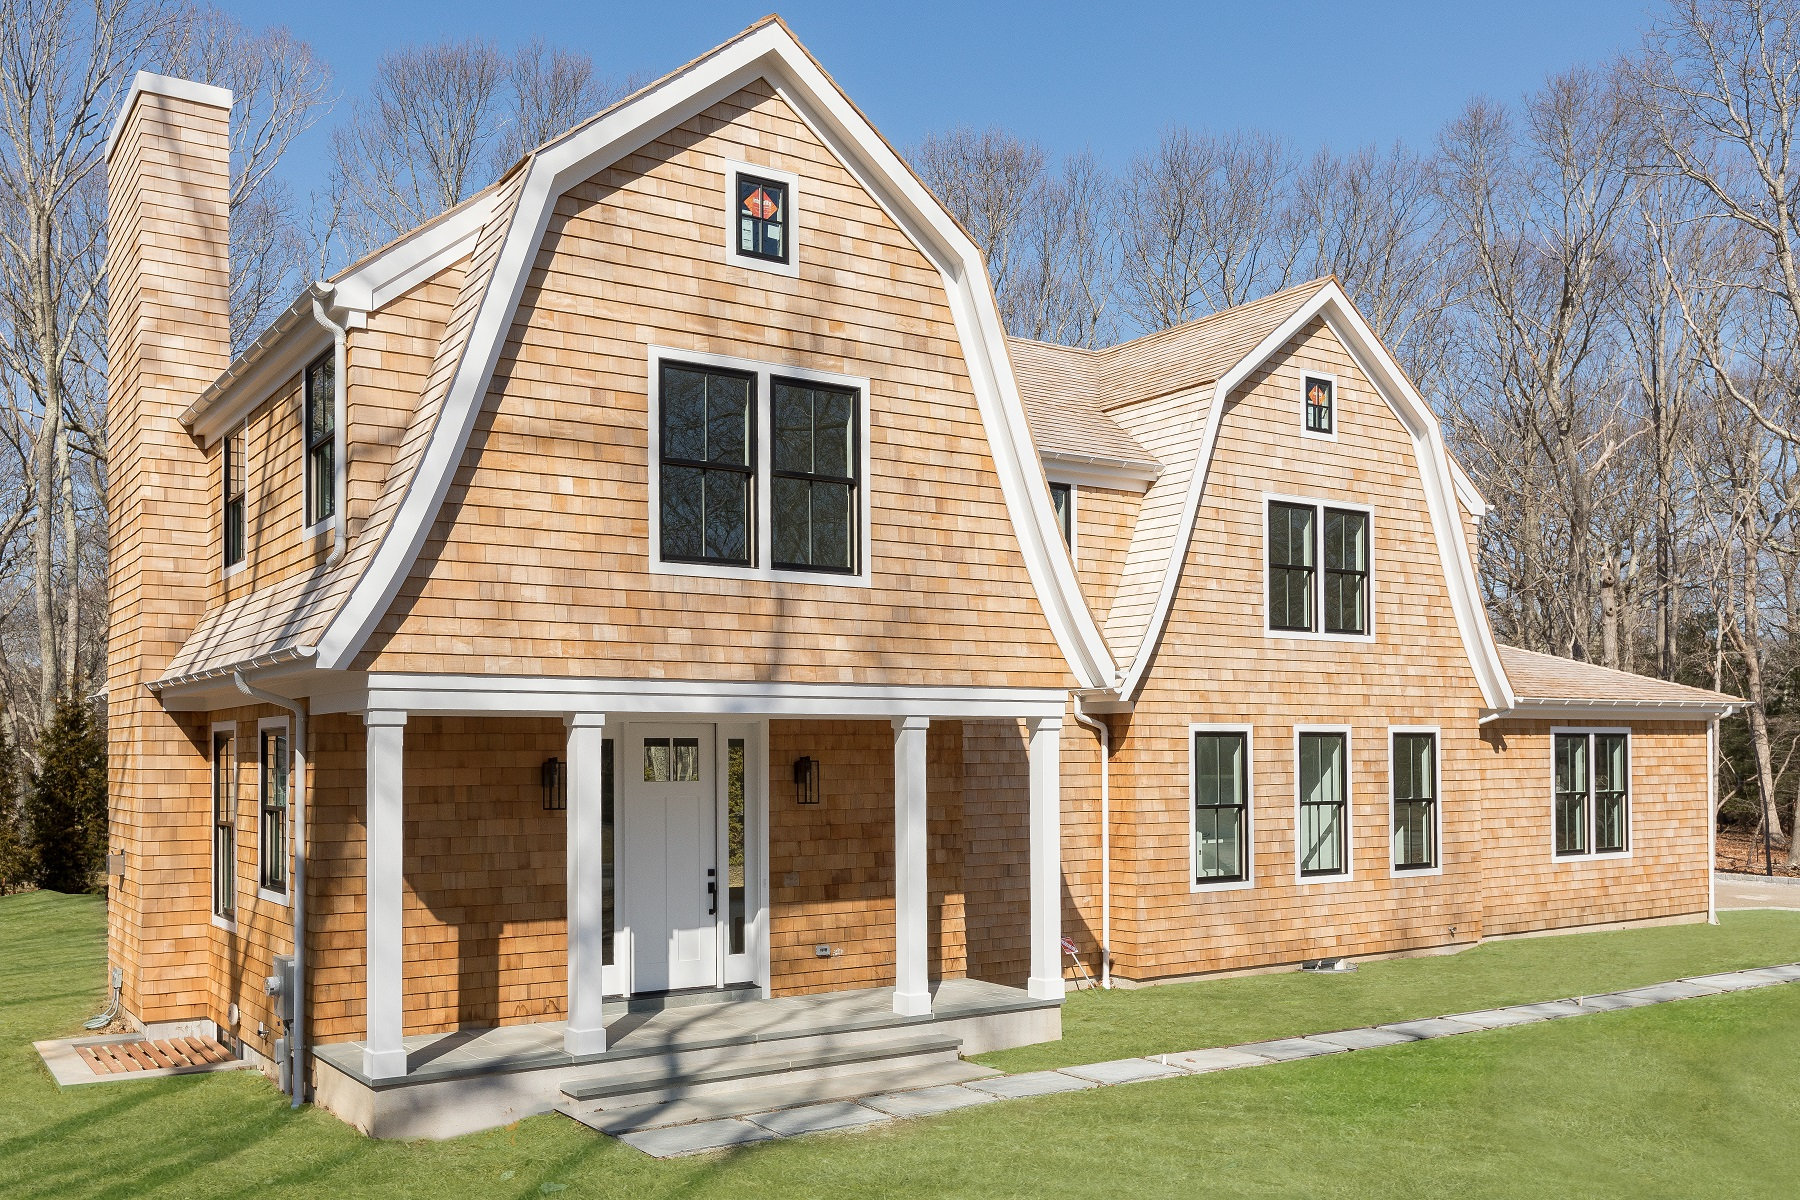 Single Family Home for Active at Southold 1340 Ships Dr Southold, New York 11971 United States